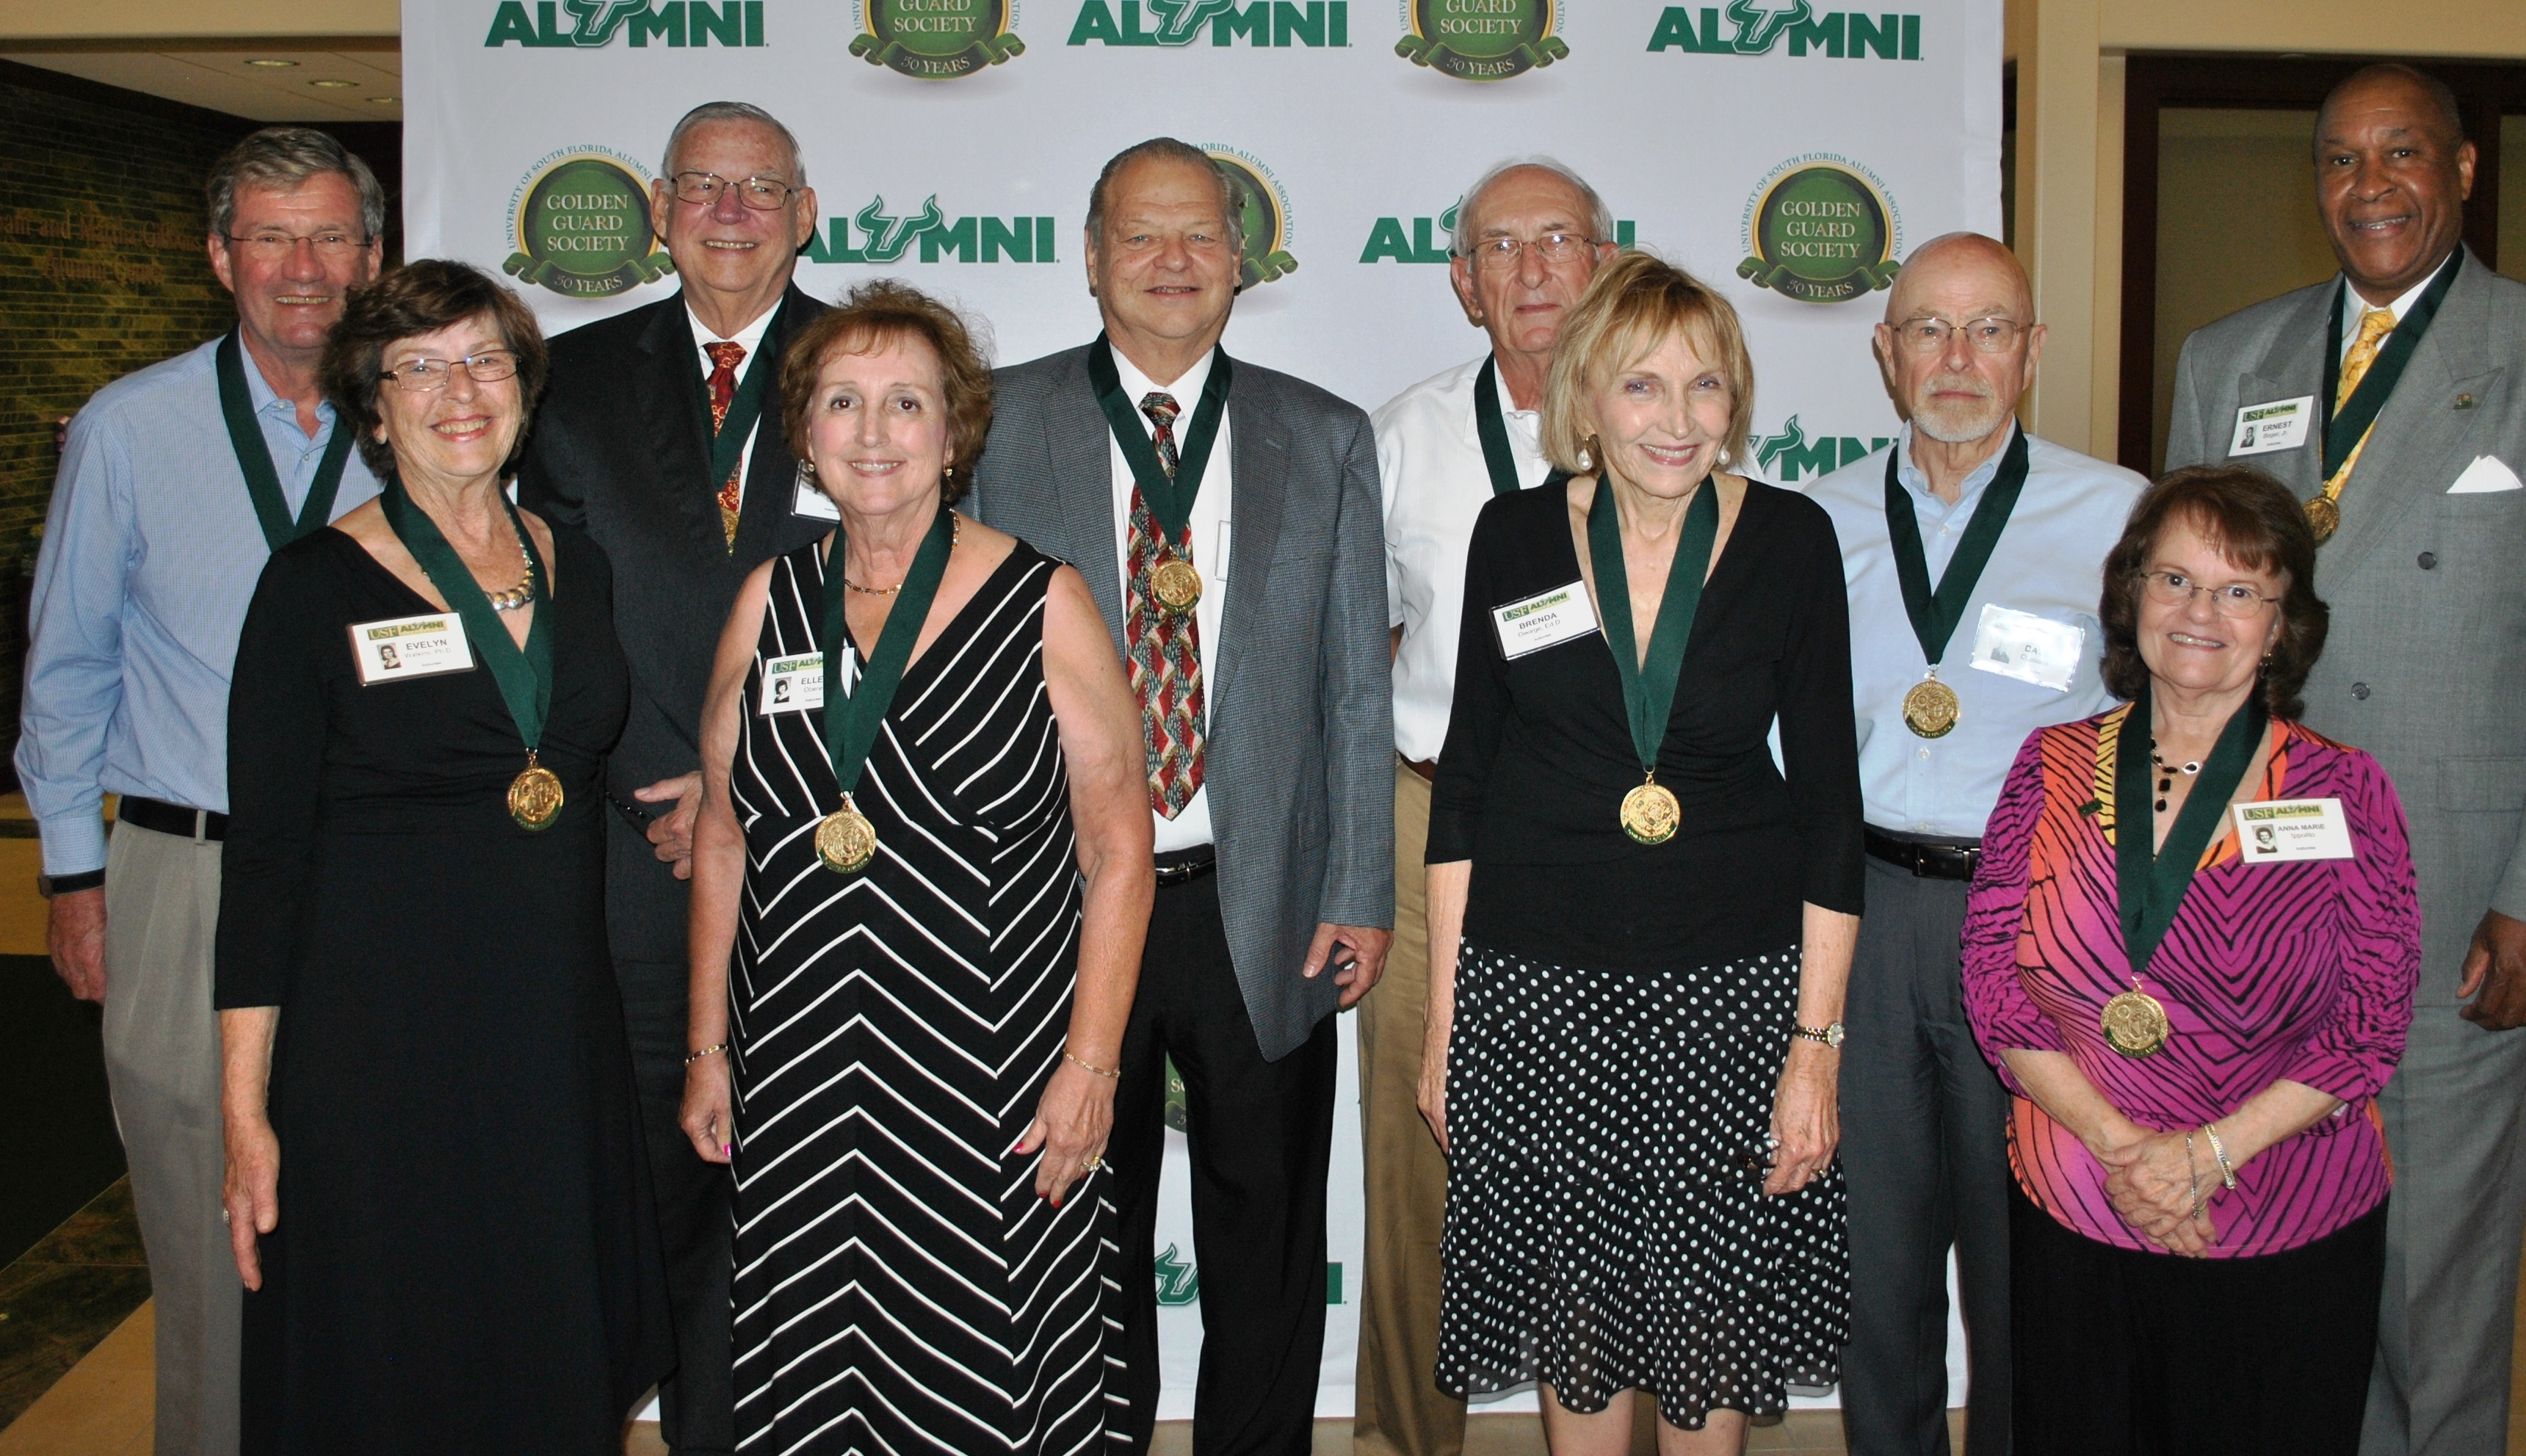 10 members of the USF class of 1965 at 50th reunion